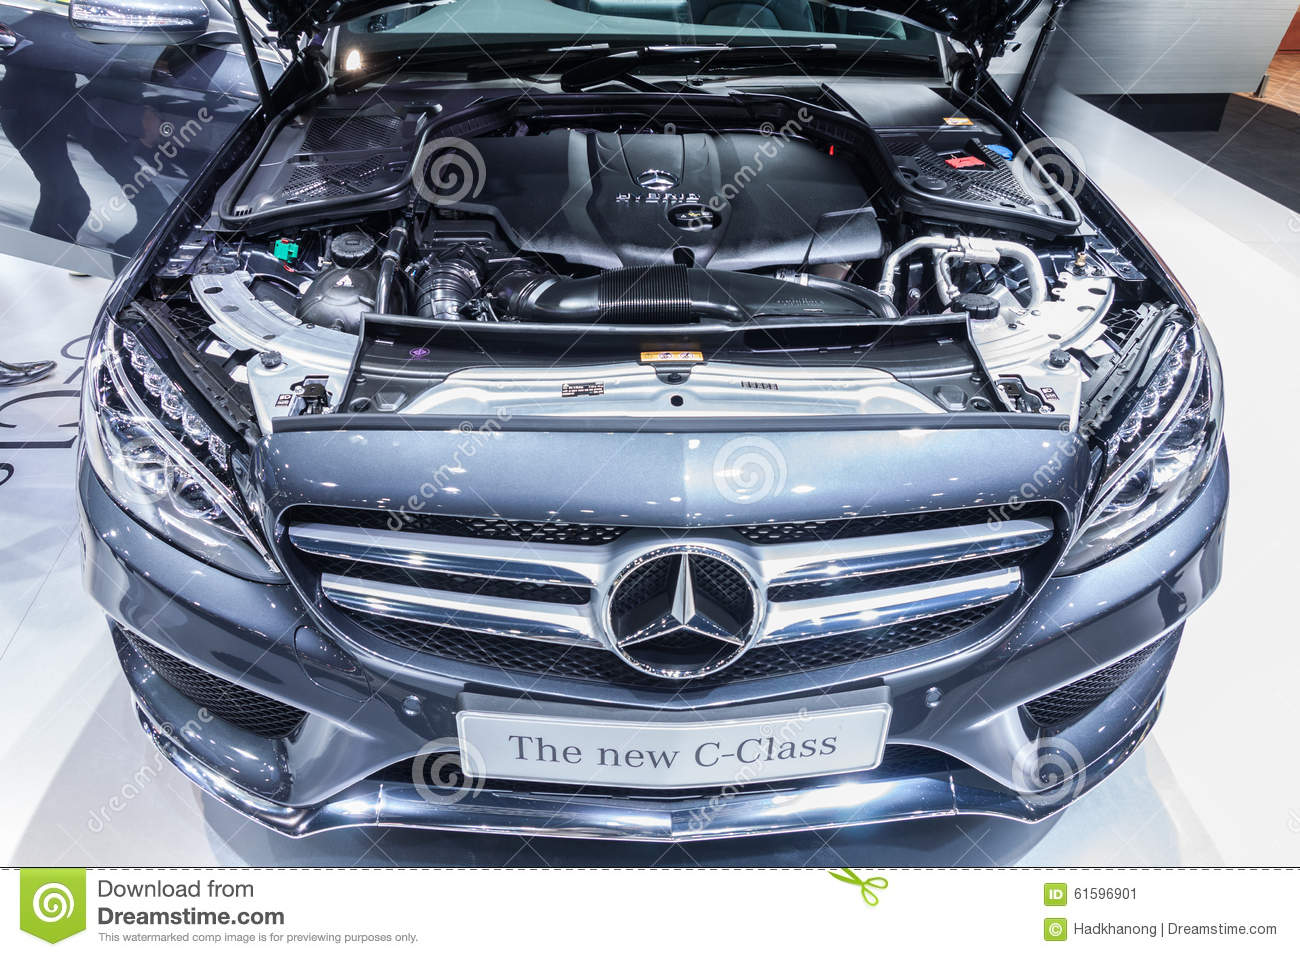 hight resolution of nontaburi thailand 2 dec mercedes benz the new c class open bonnet for showing engine on display showed in 31th thailand international motor expo on 2